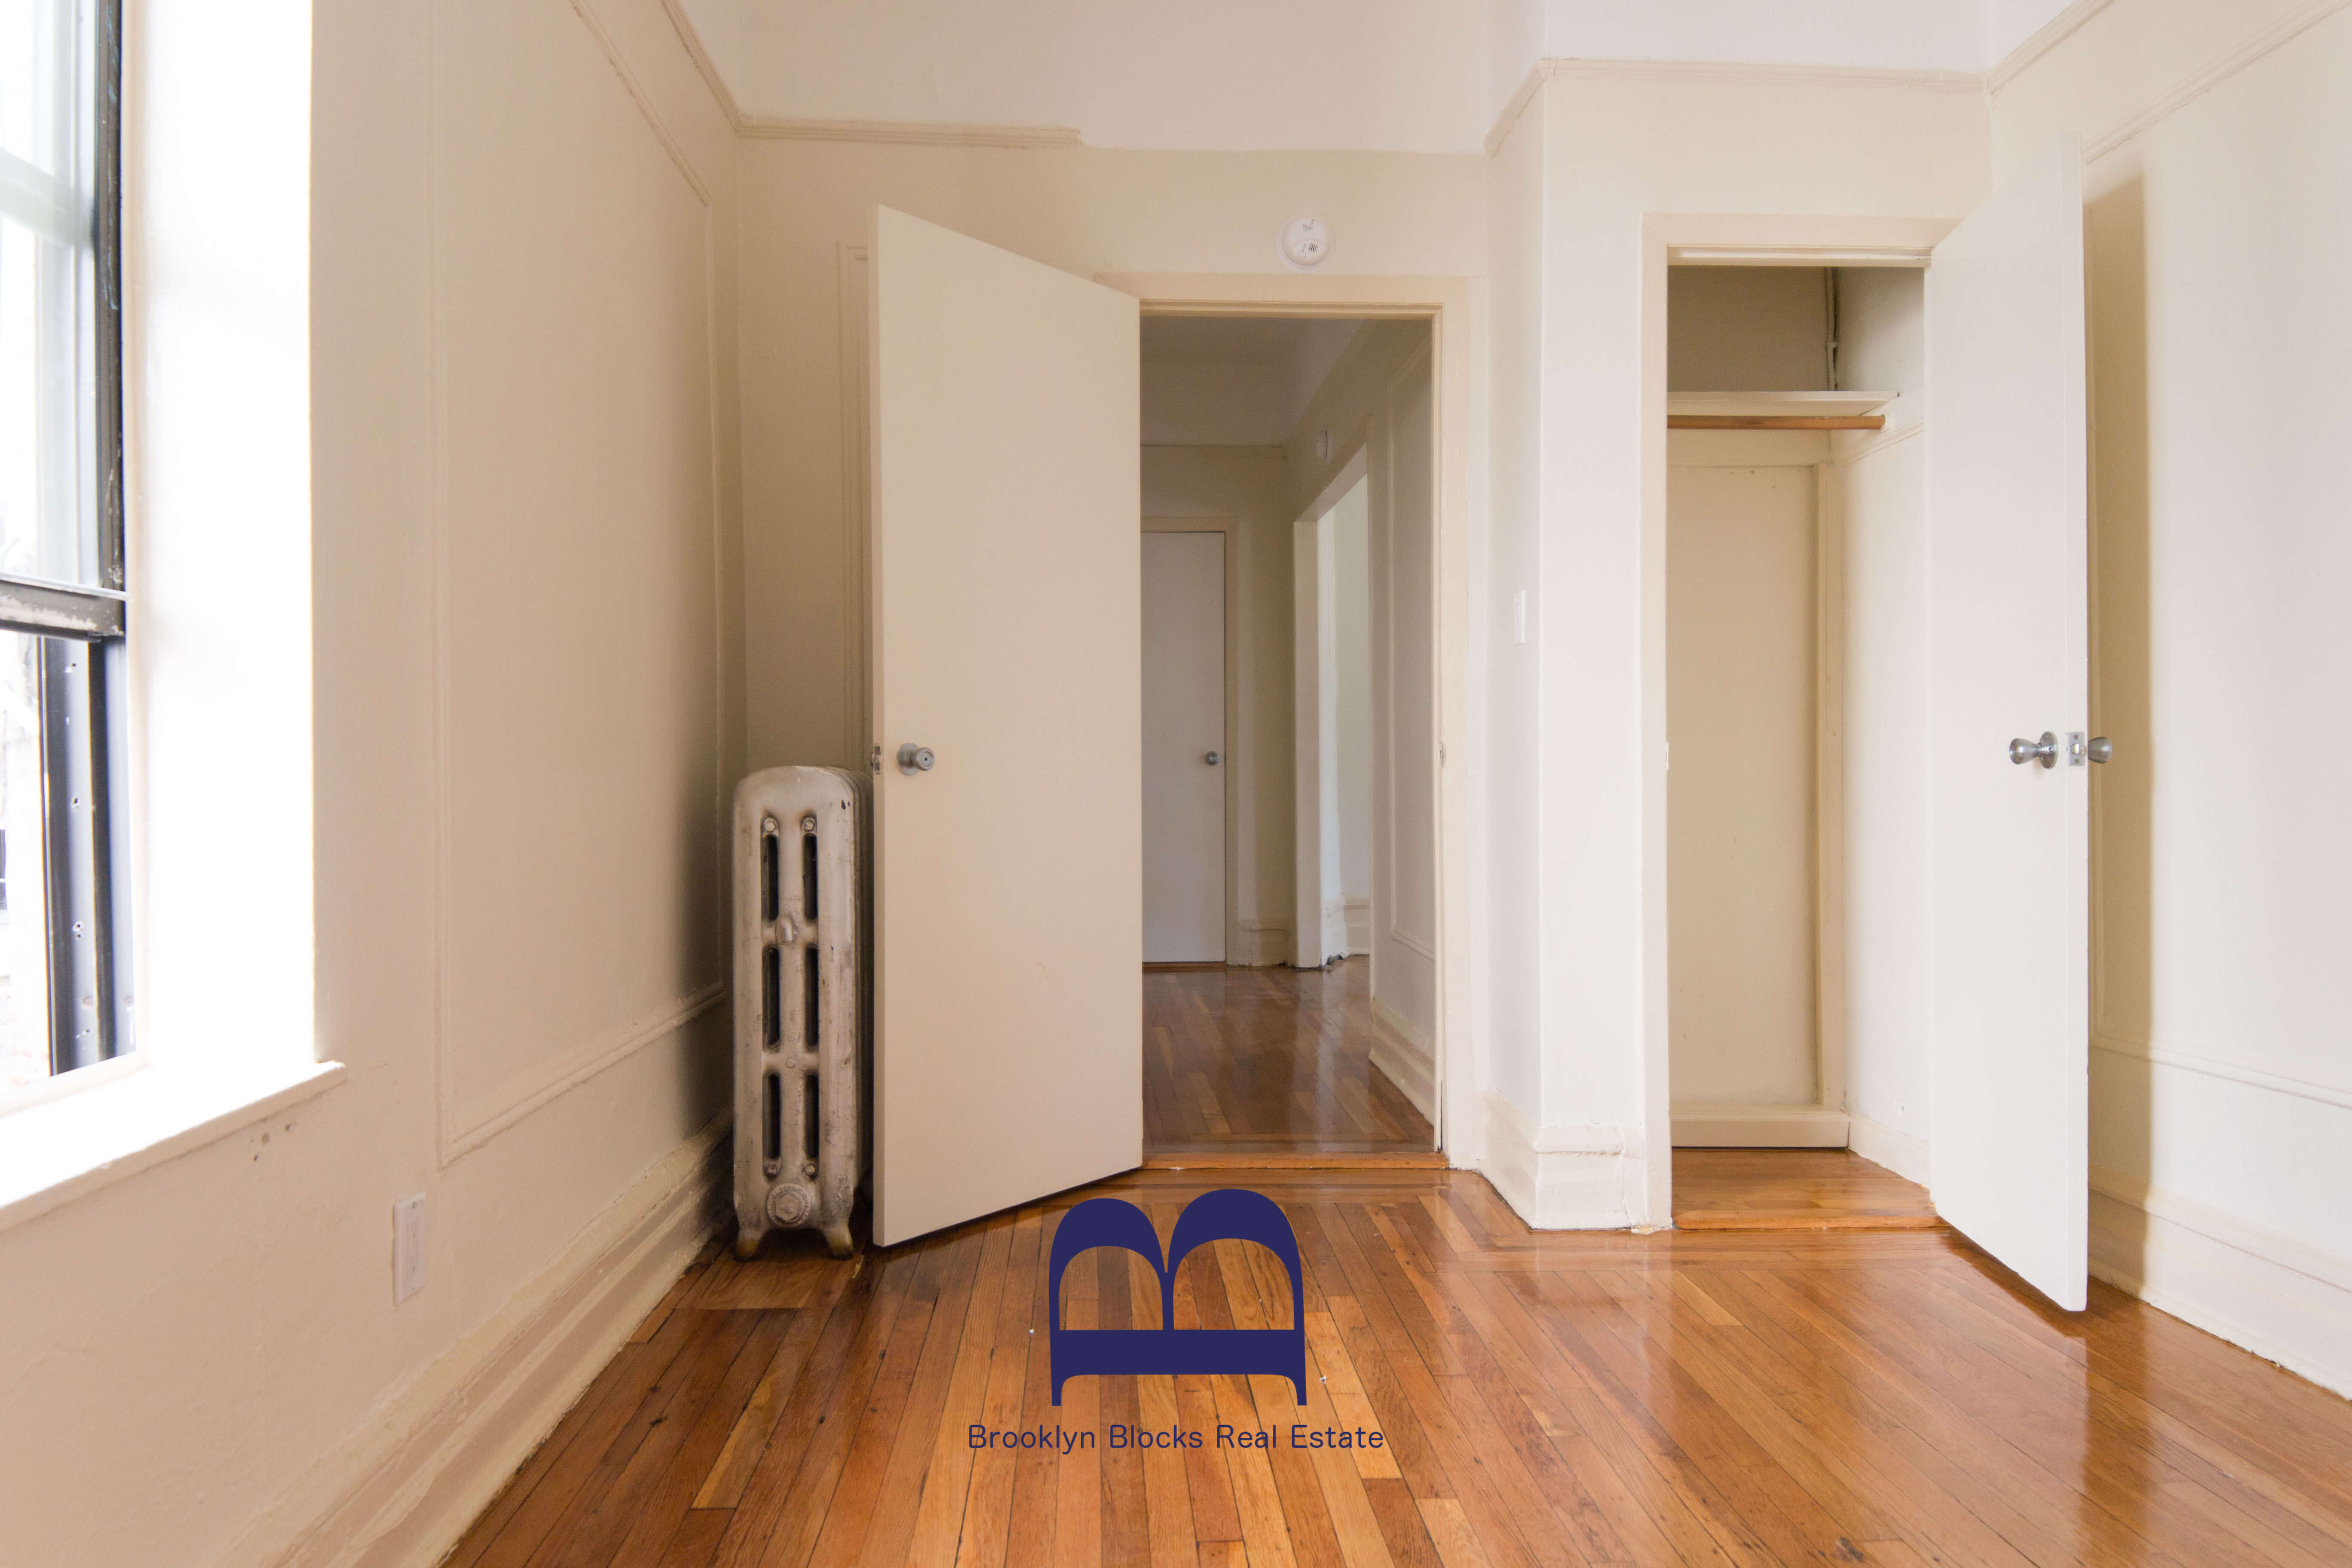 brooklyn-apartments-for-rent-crown-heights-1082-president-street-bedroom-2